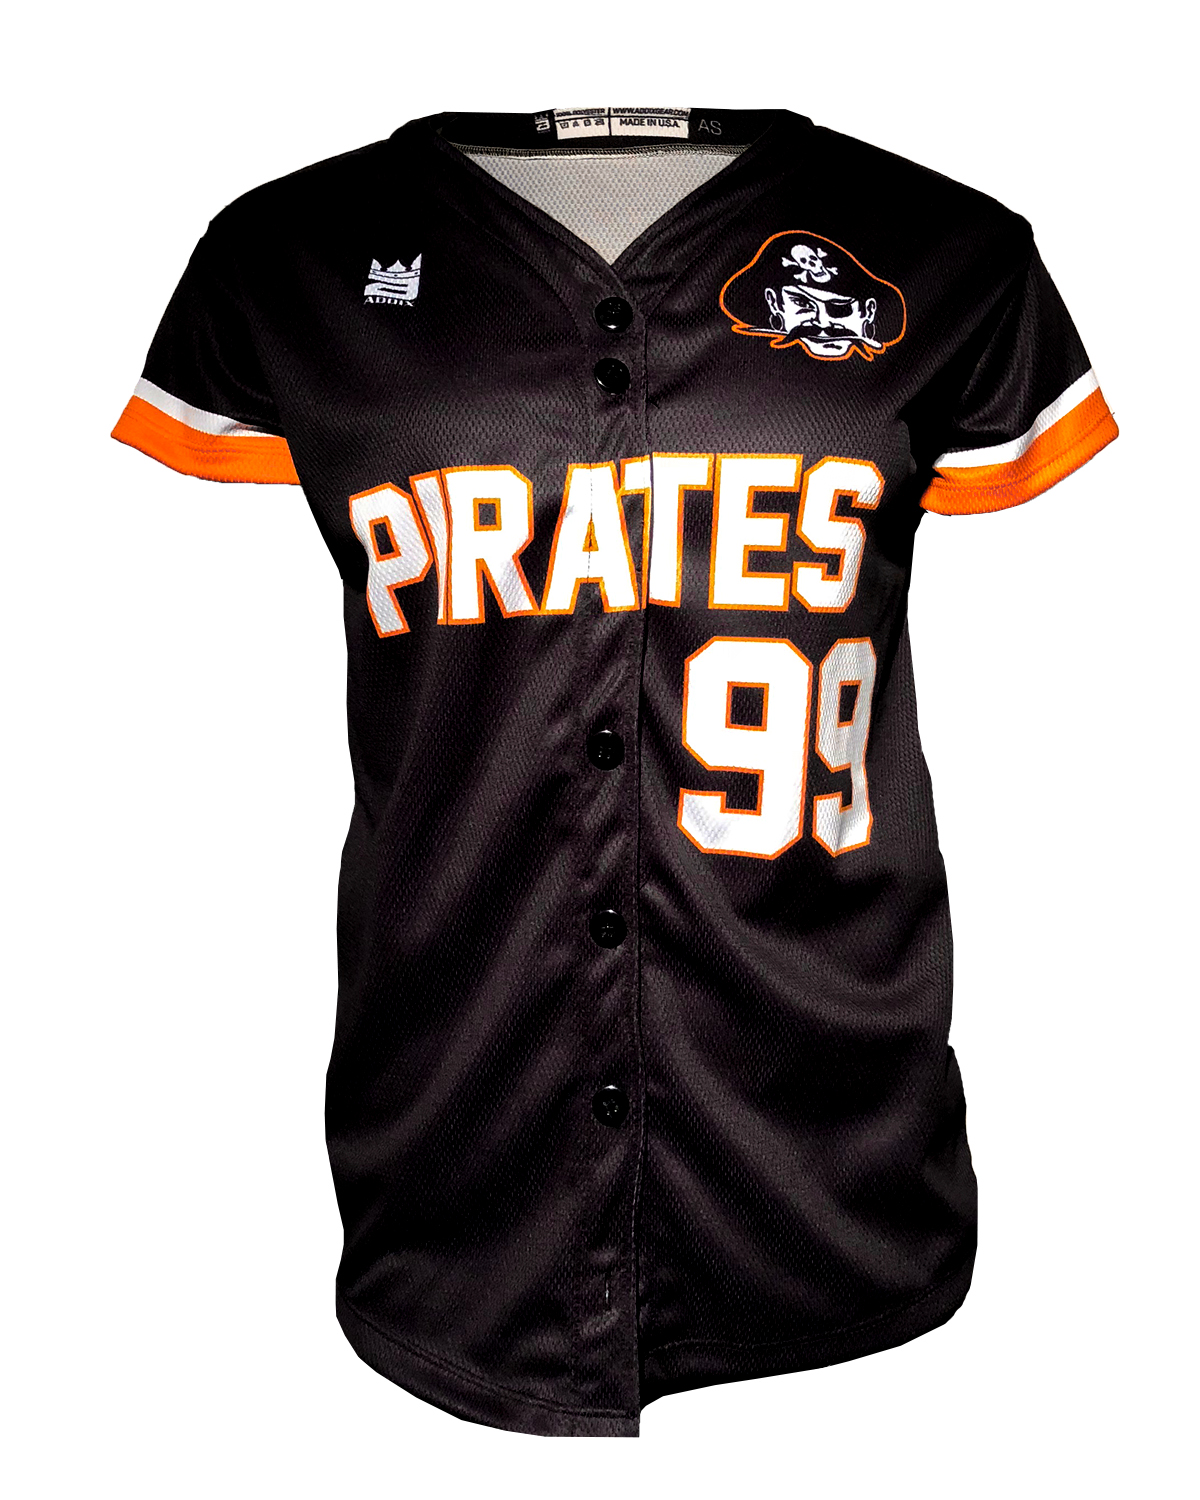 Custom Full Button Softball Jersey 1.png